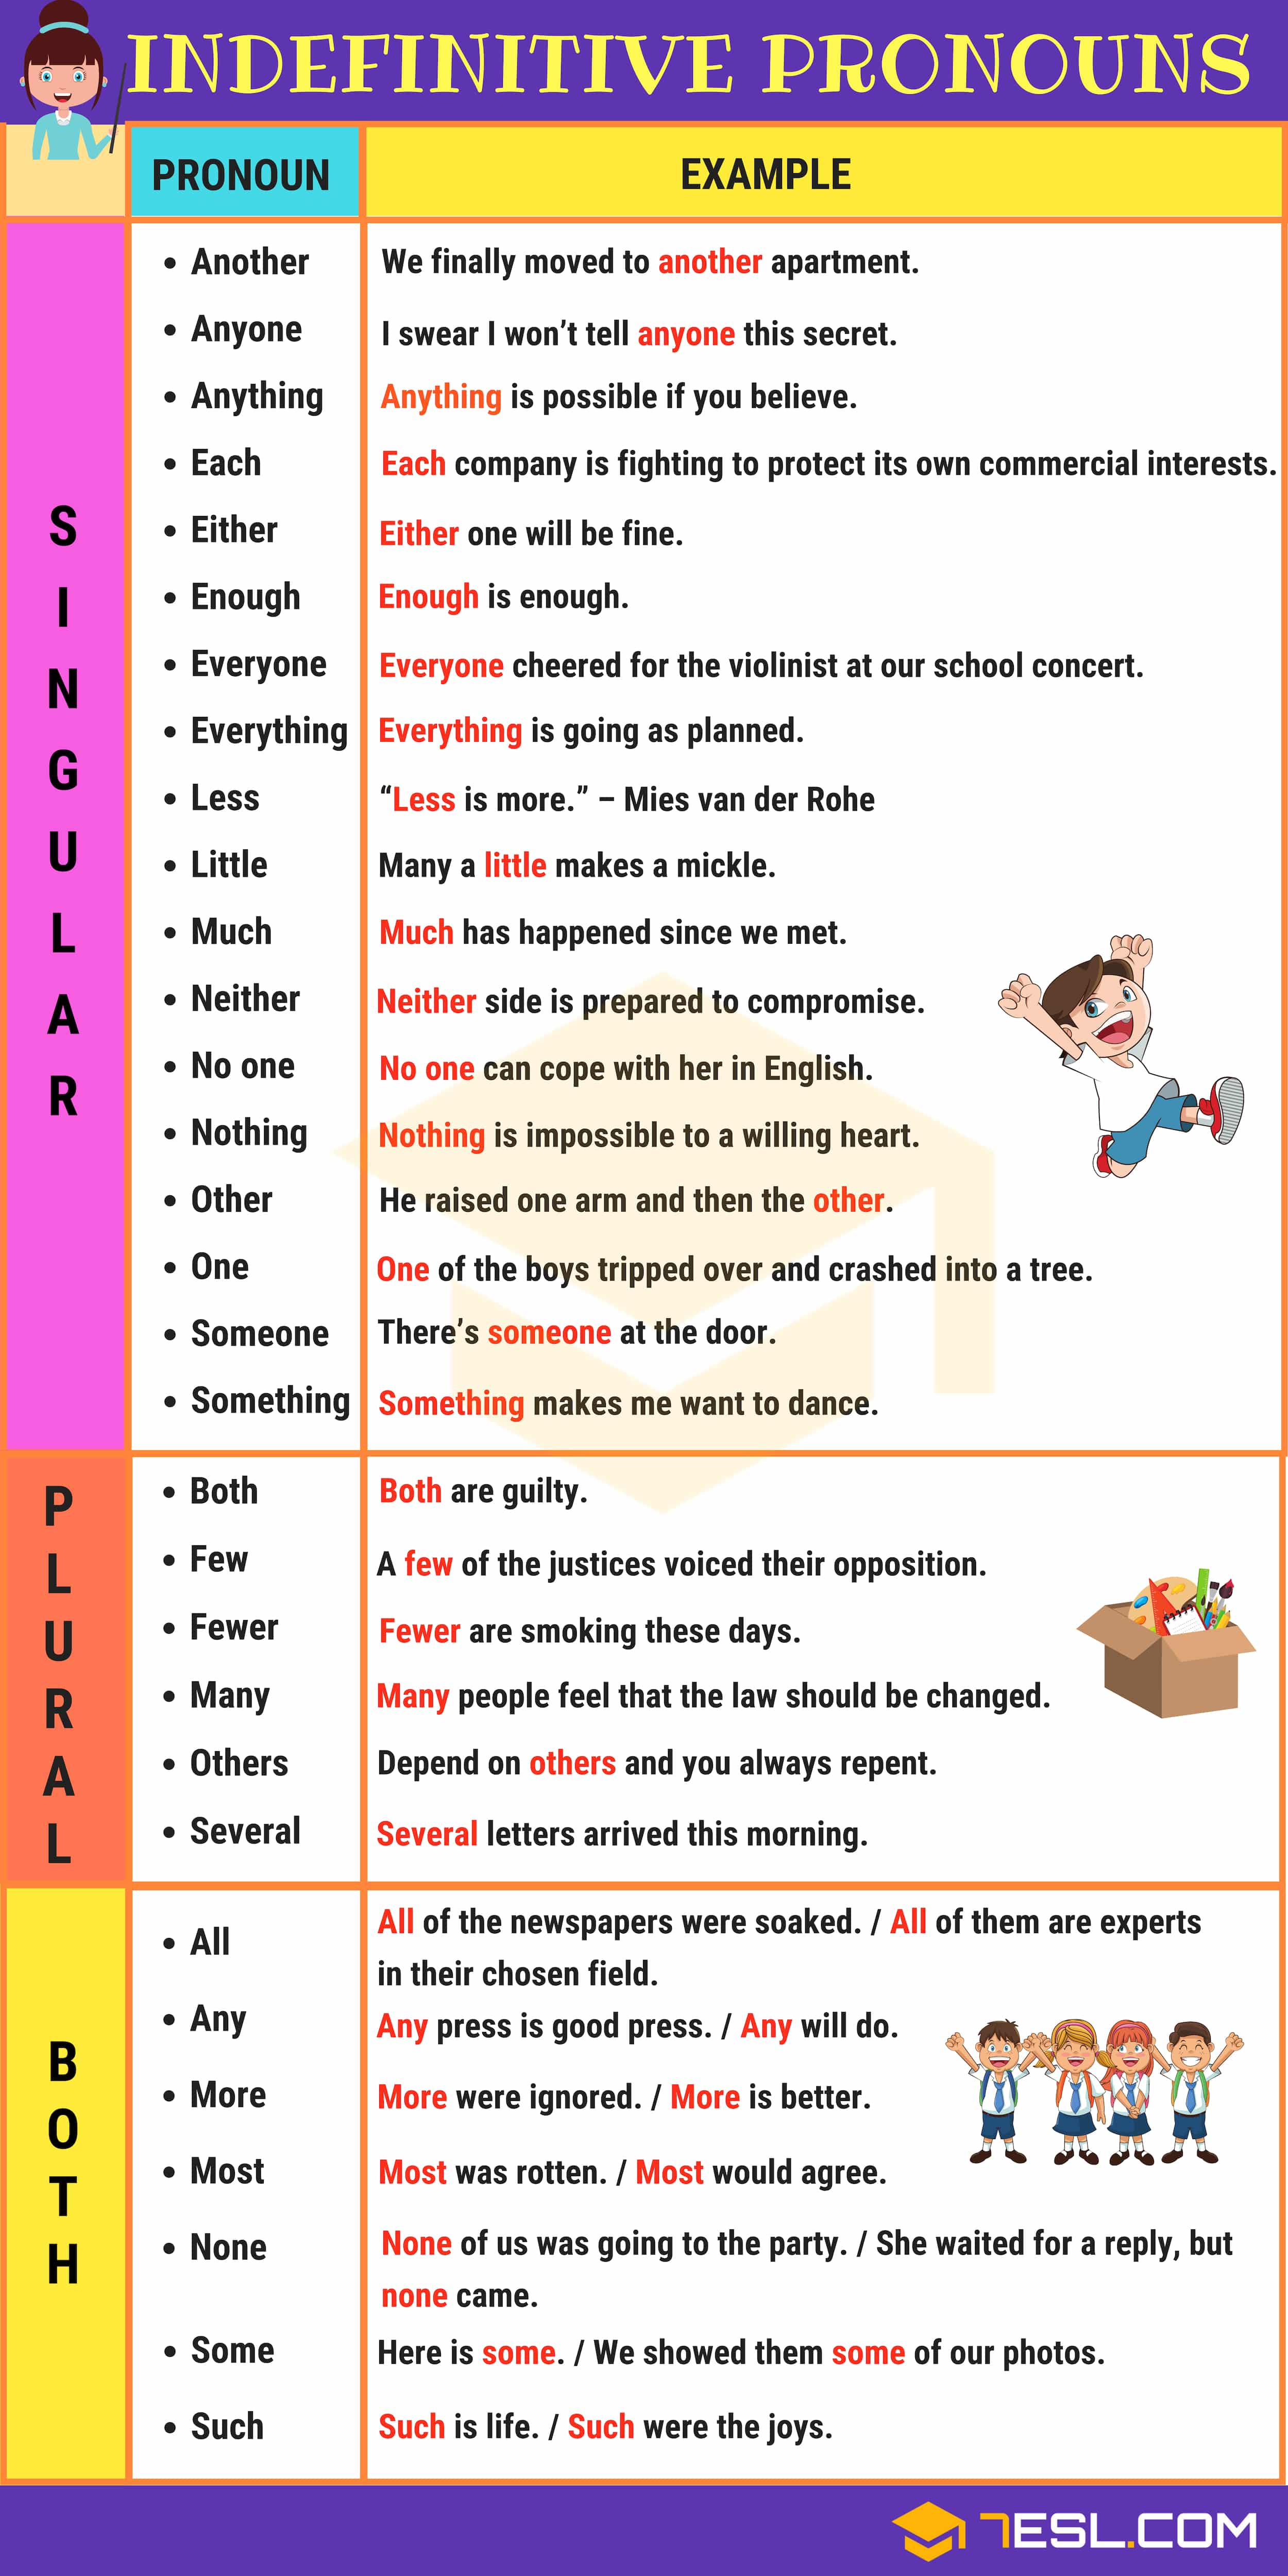 Indefinite Pronouns Singular And Plural Examples